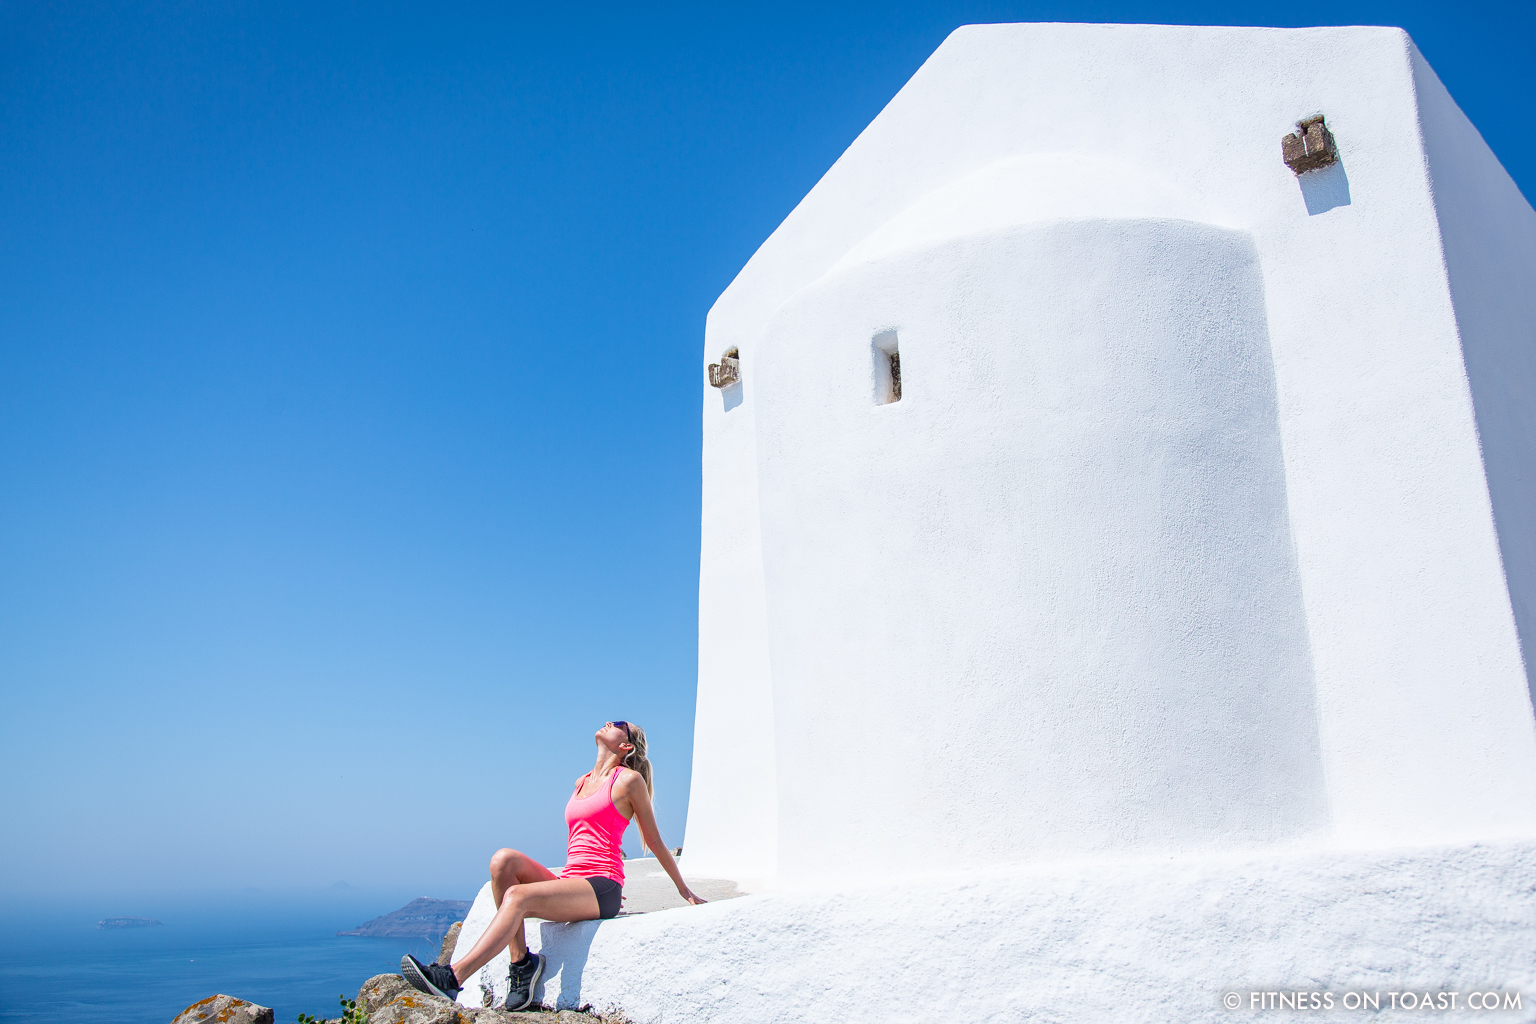 Fitness On Toast Faya Blog Healthy Workout Travel Active Escape H&M Hennes HMSport Fashion Santorini Greece Outfit OOTD-14